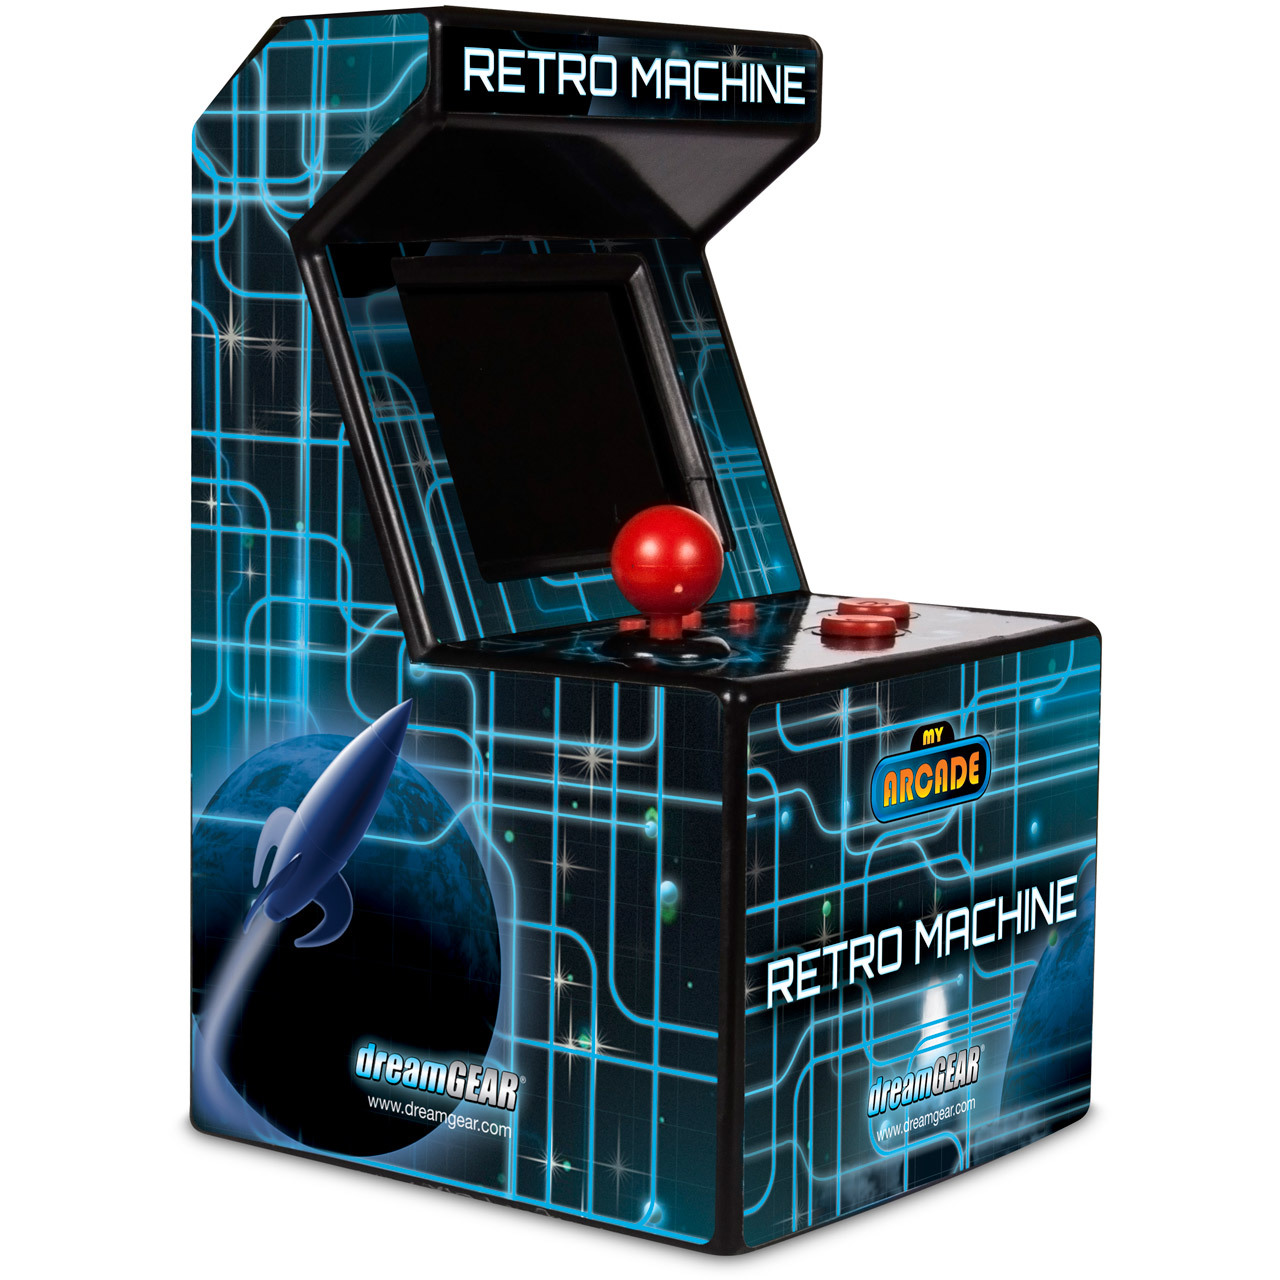 Dreamgear My Arcade Retro Machine 200 Built In Games Handheld Electronic Circuits Image For